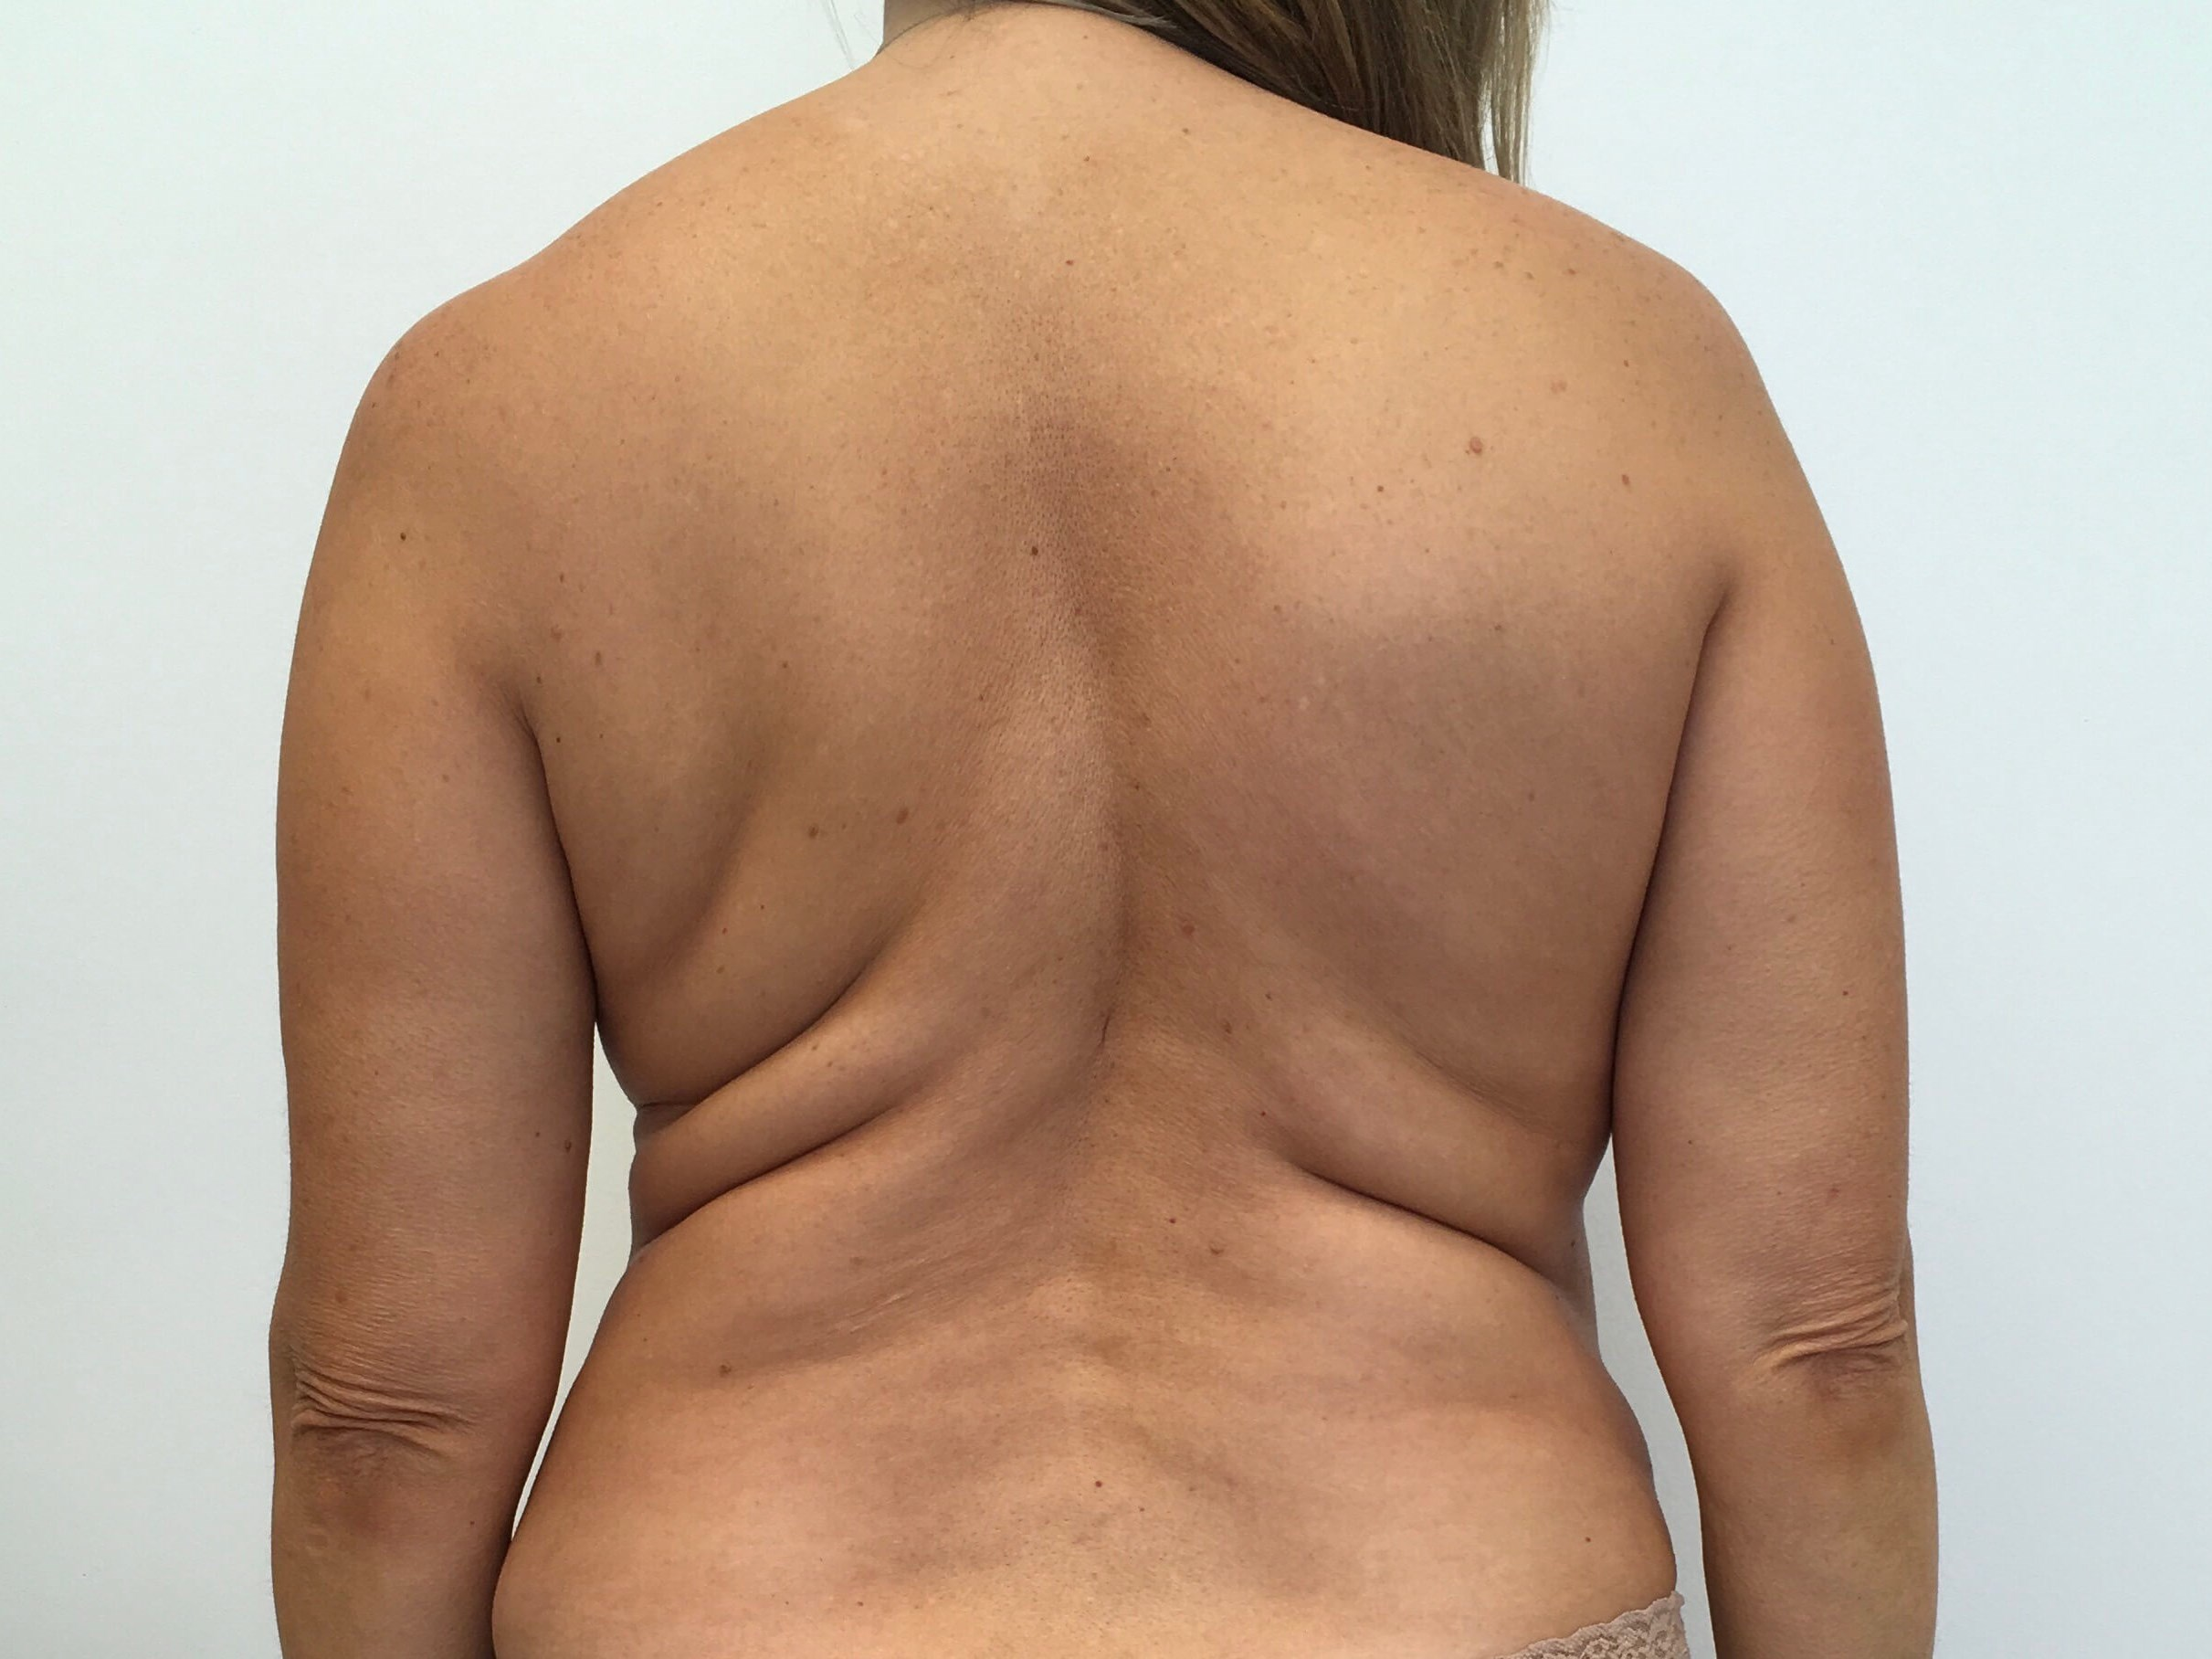 Liposuction - Back Before